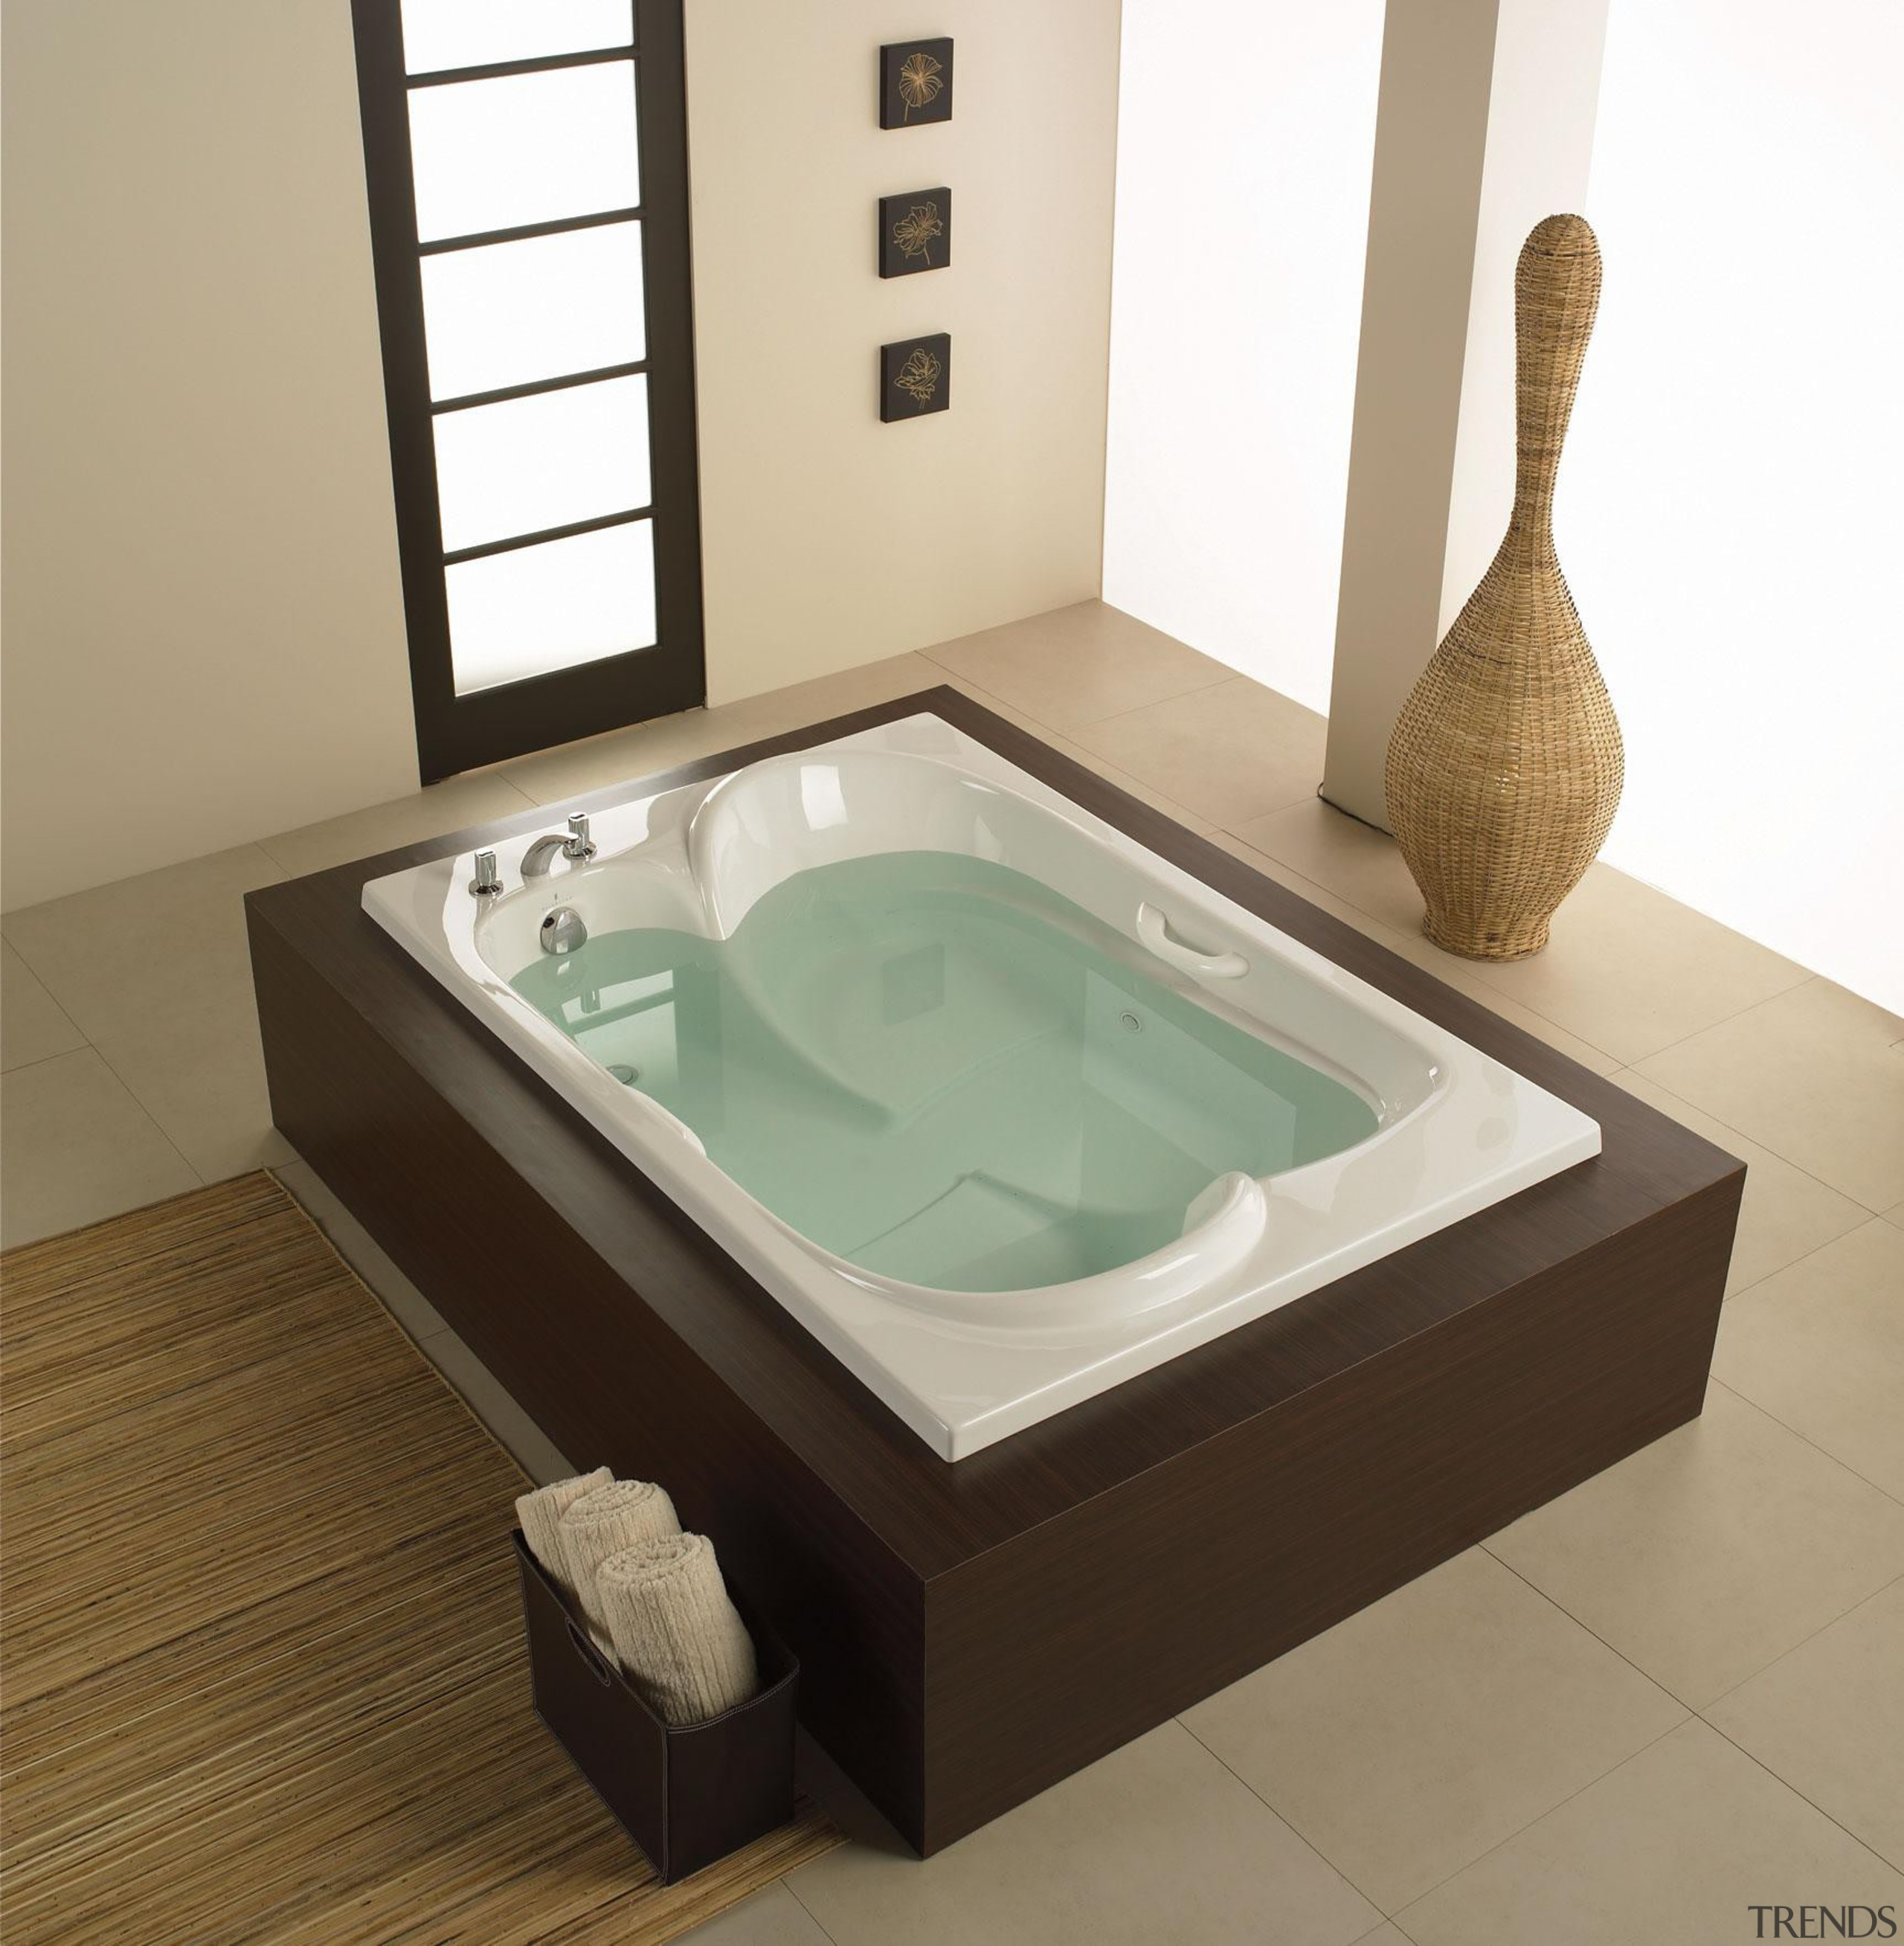 Perfect for a spa like design, this Amma bathroom sink, bathtub, jacuzzi, plumbing fixture, product design, sink, tap, white, brown